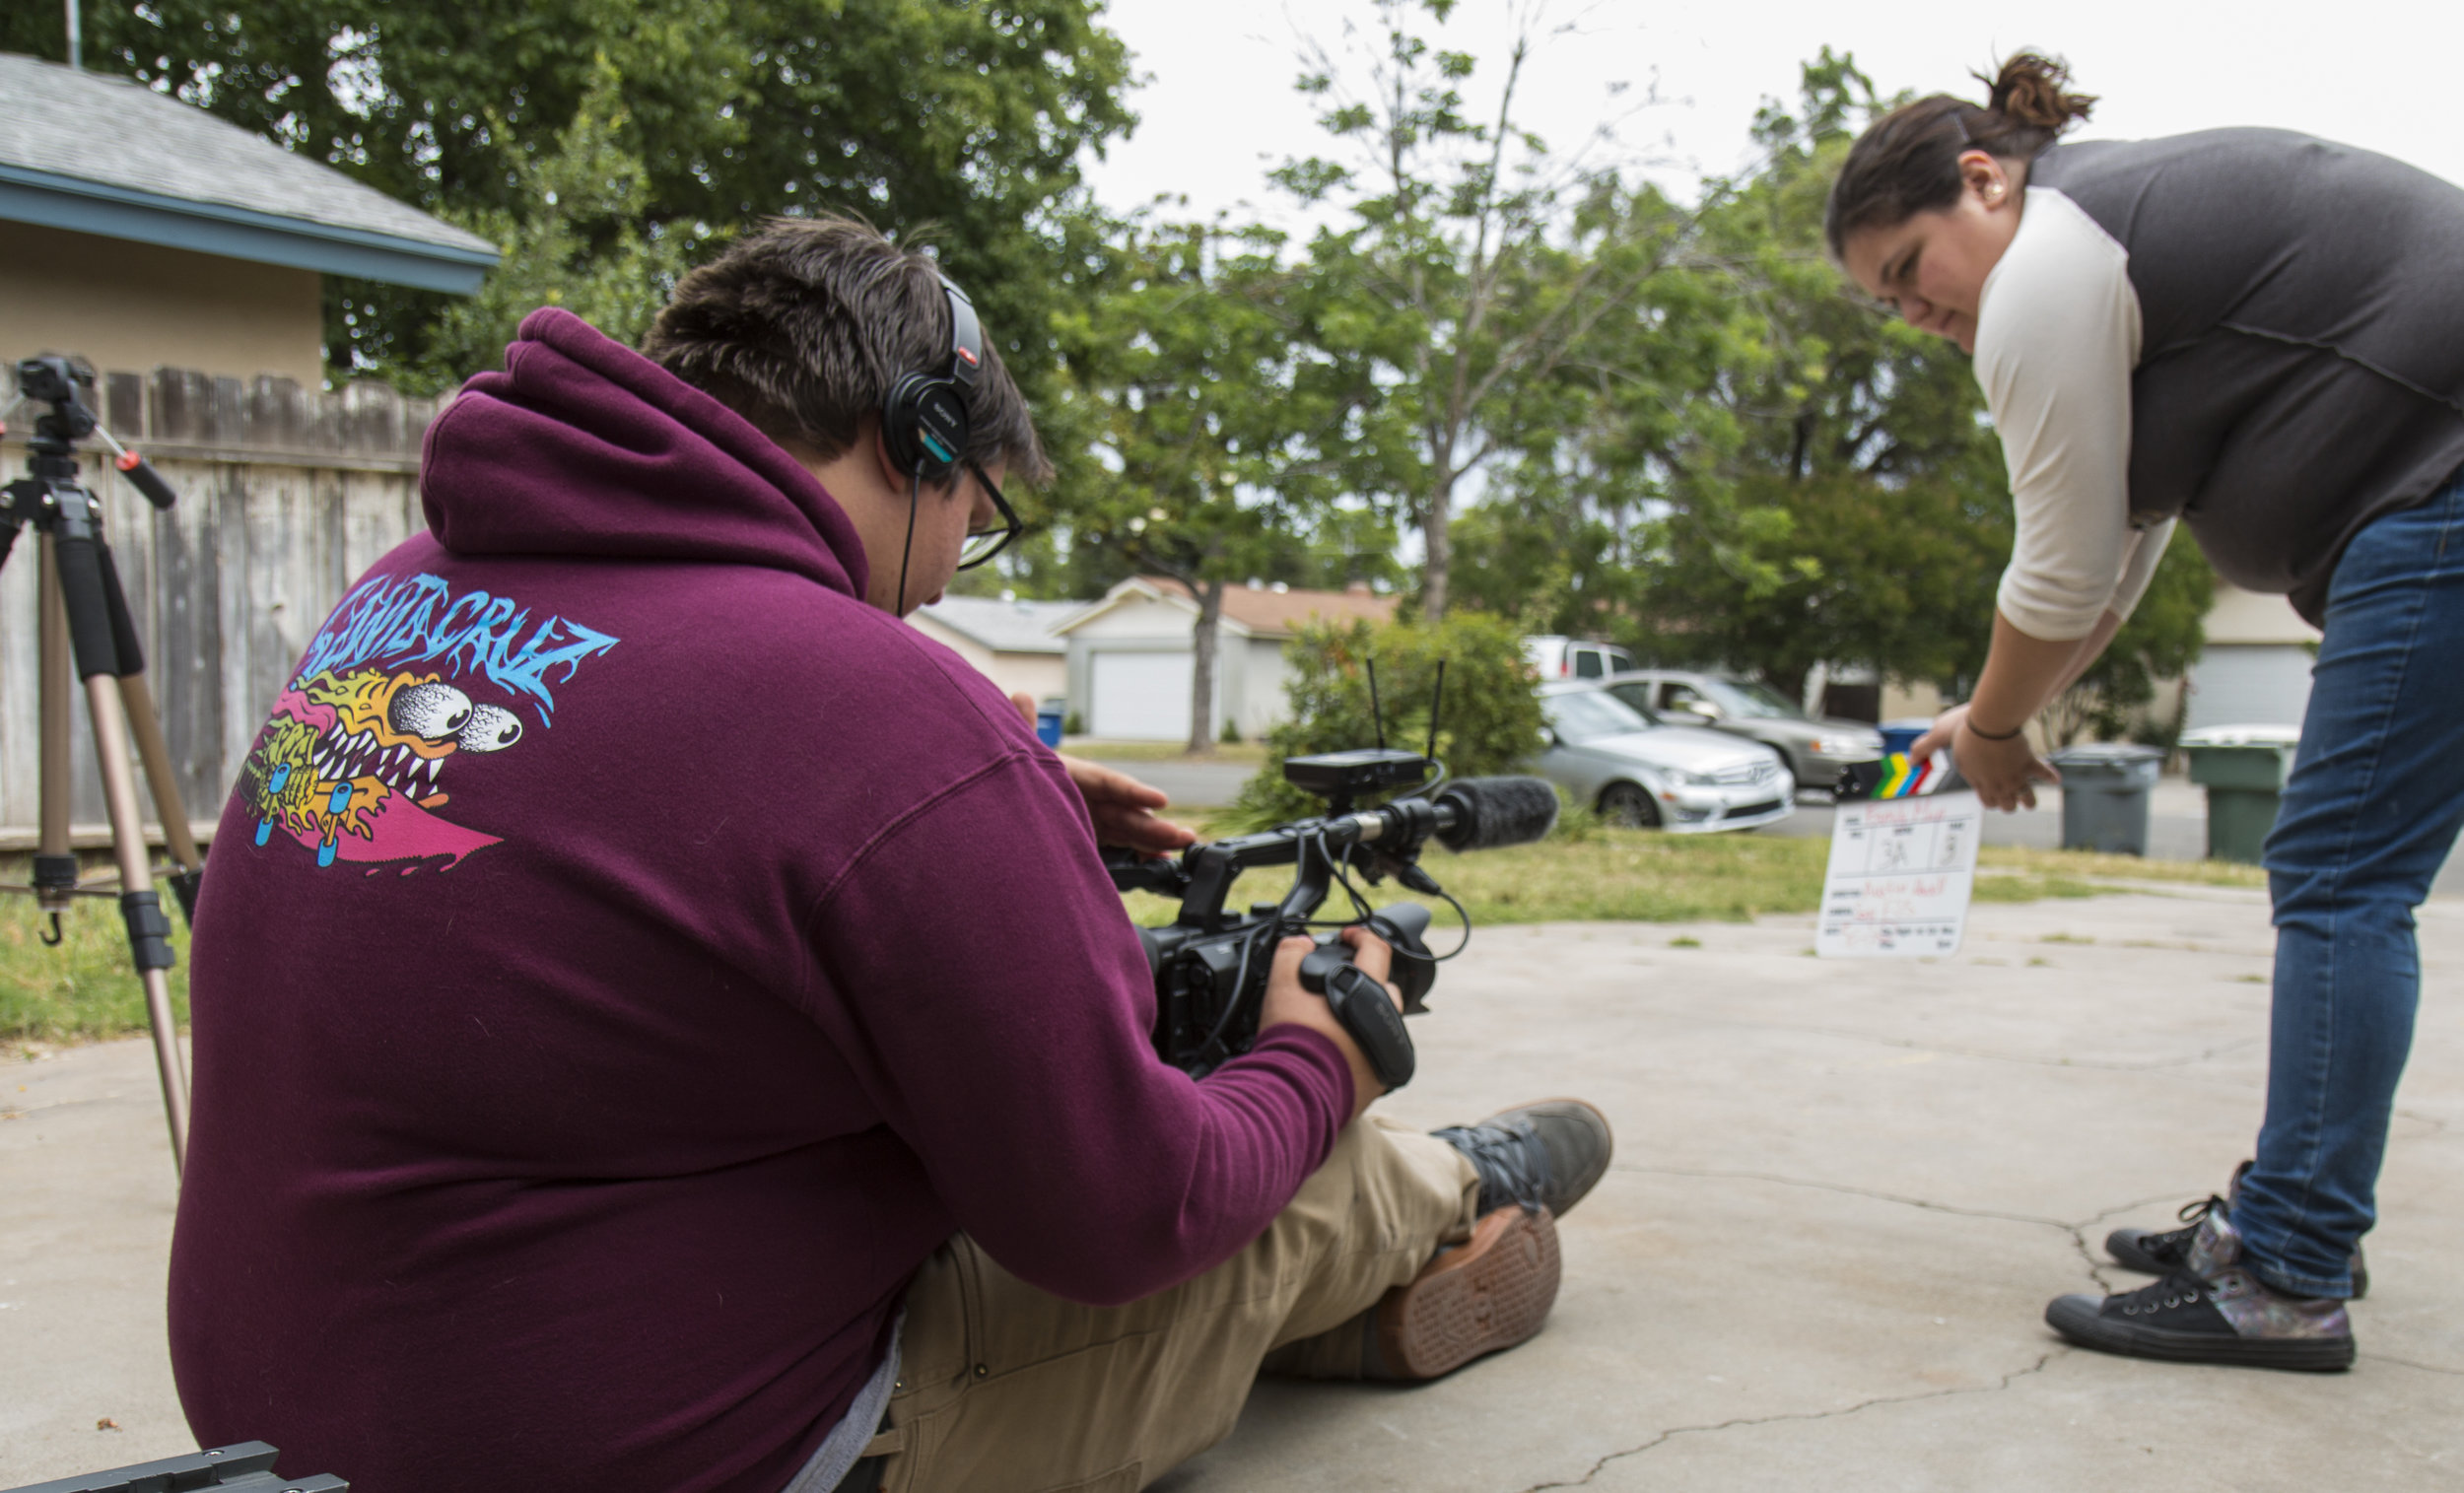 Austin filming on ground with clapboard_2.JPG